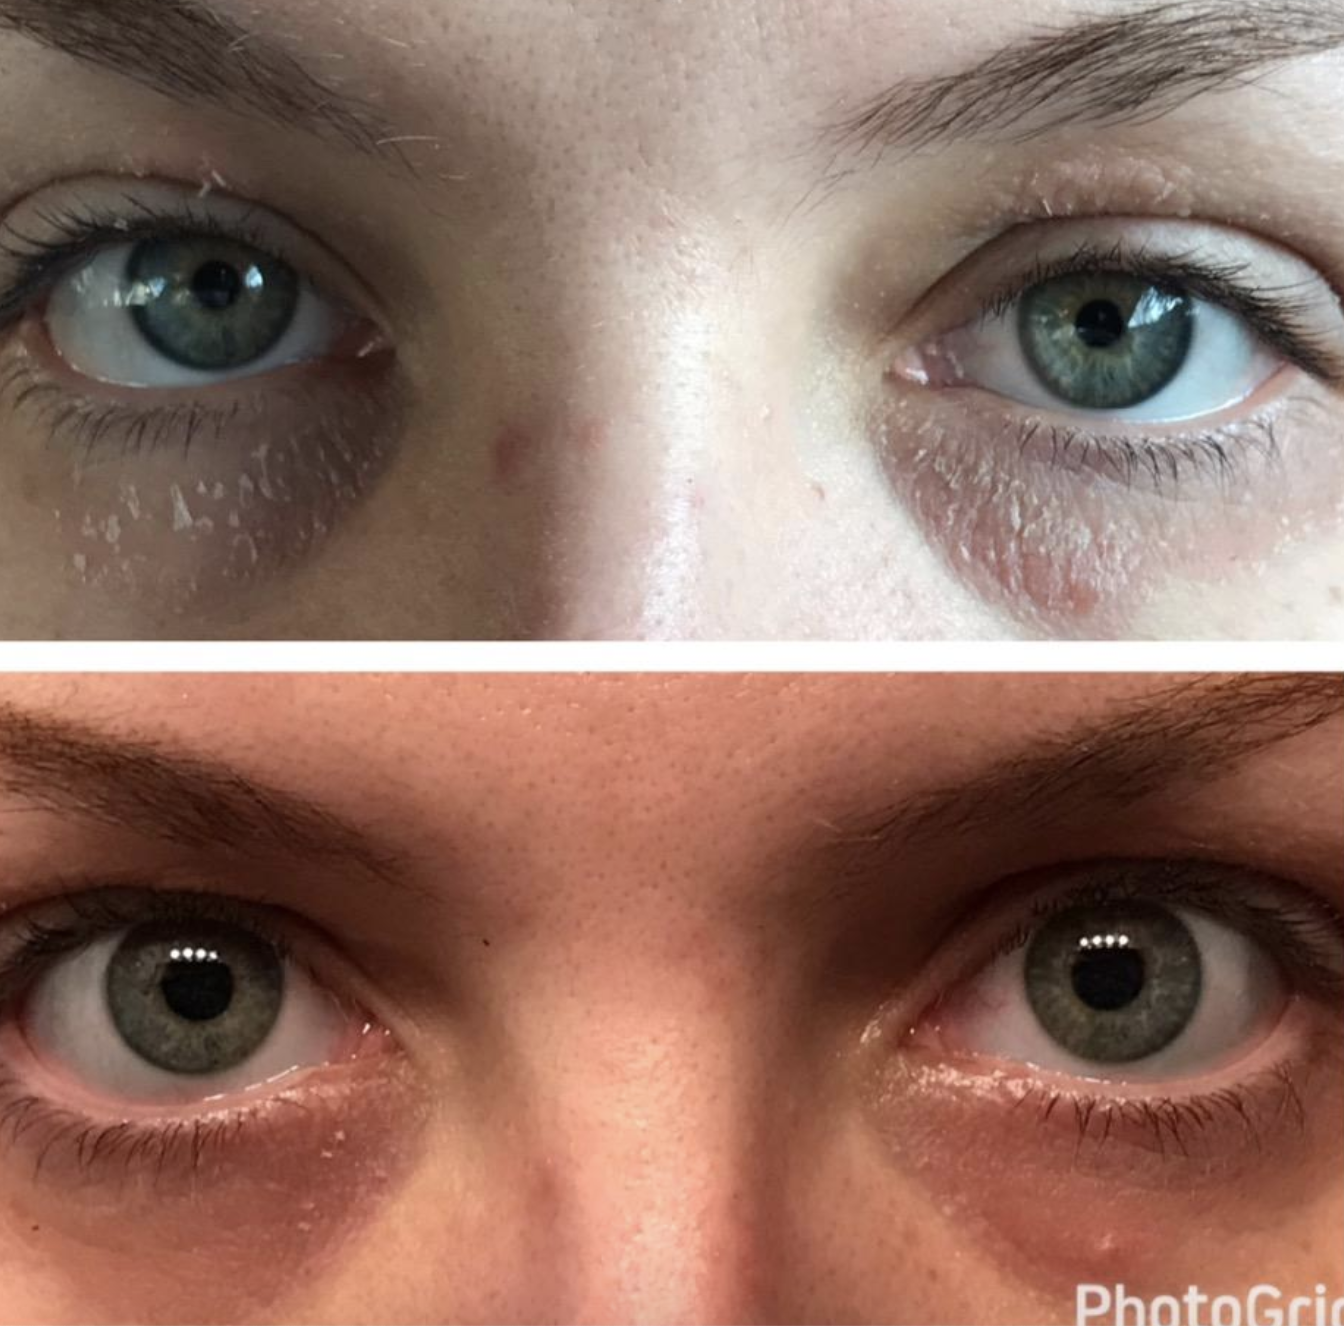 on the top portion a person with patches of dry skin around their eyes and on the bottom the same person with significantly less dry skin